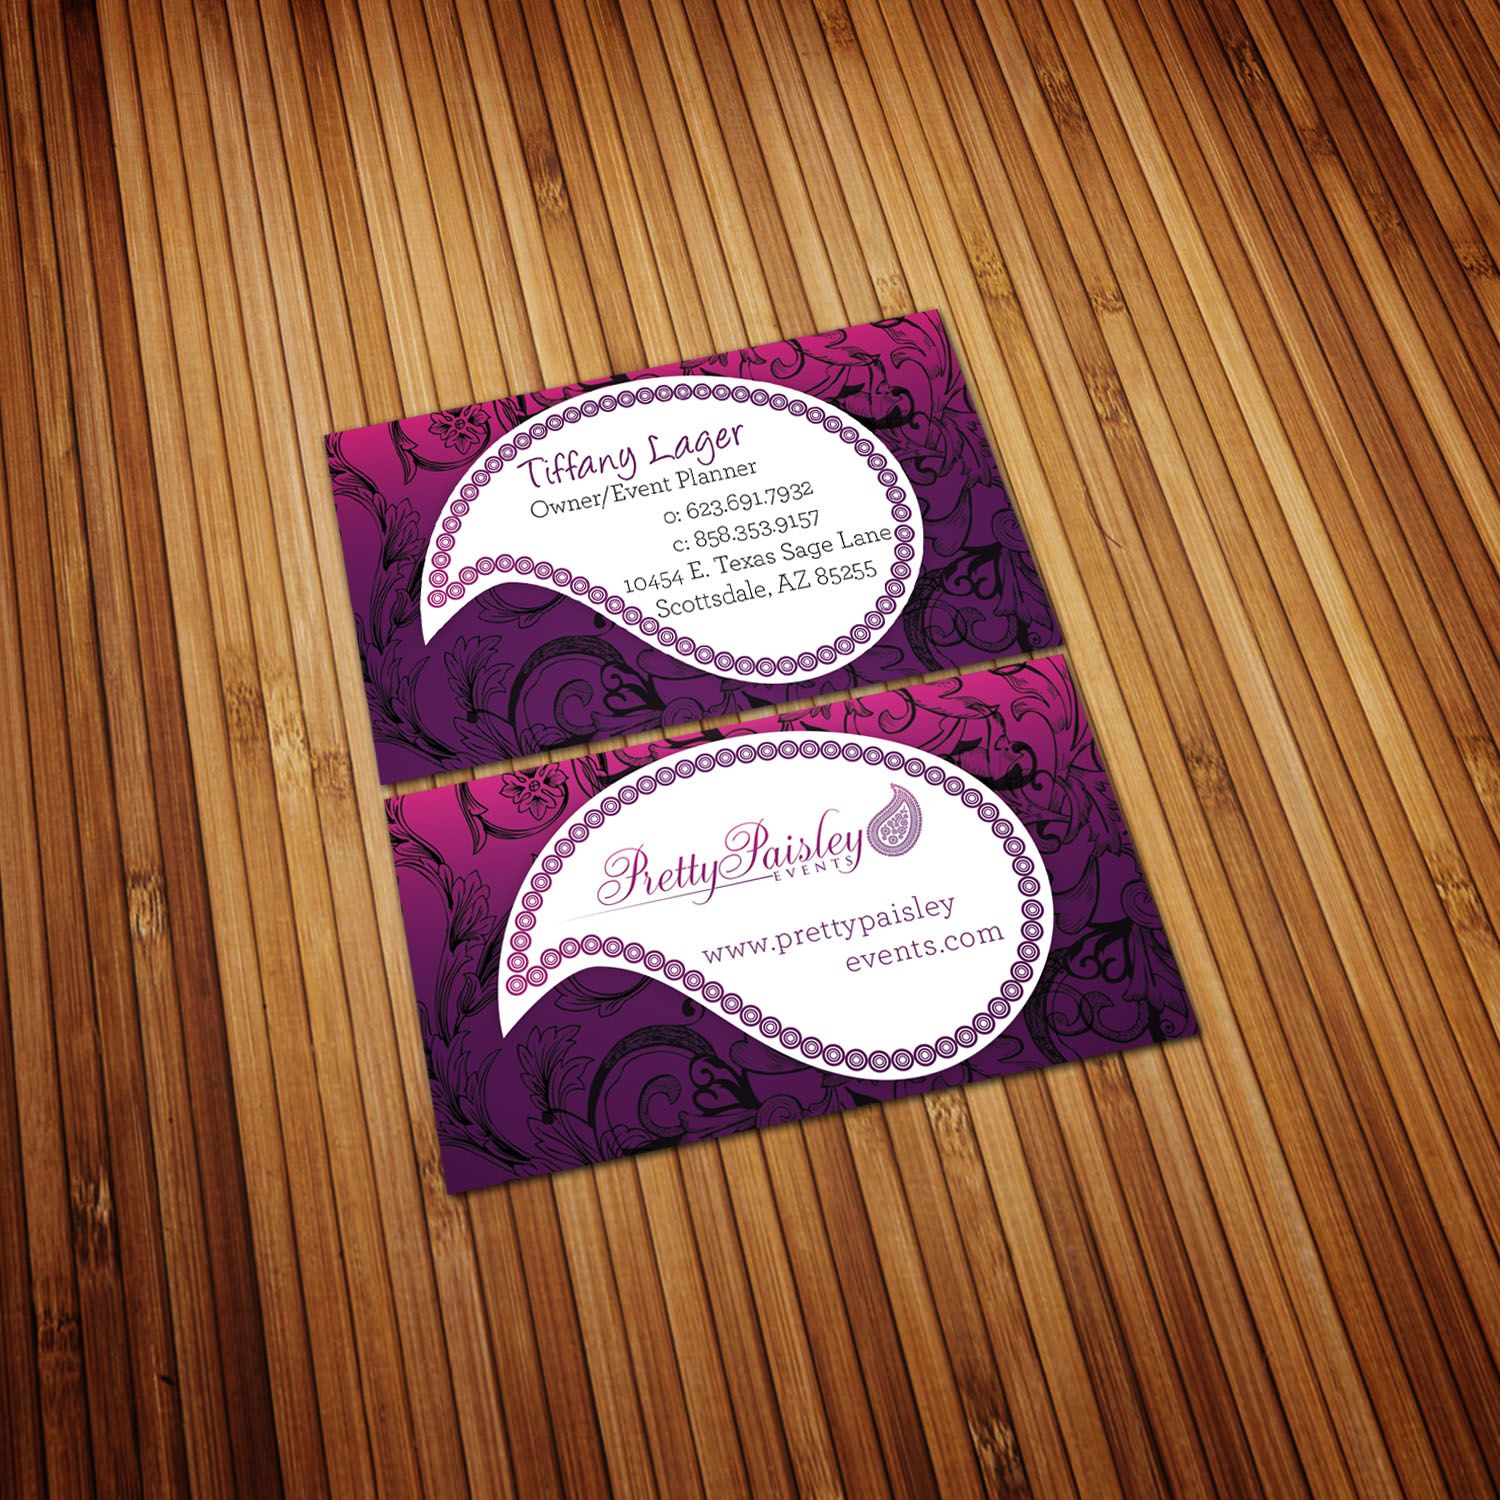 Business card concept i designed for pretty paisley an